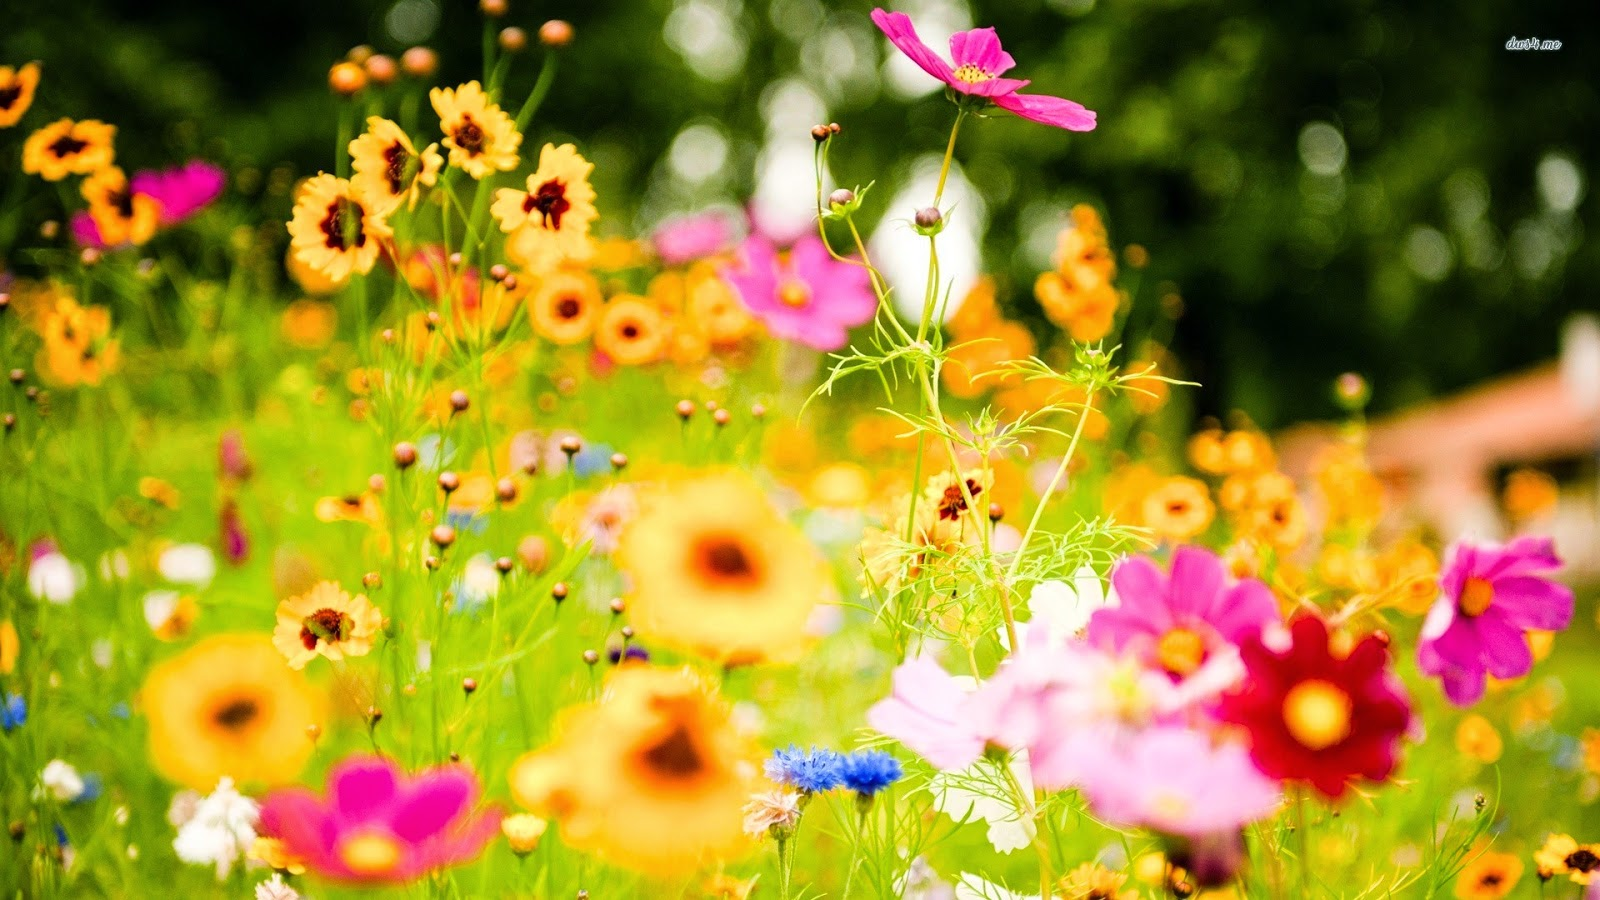 Colorful Flowers Wallpapers For Pc Free Download Online Fun